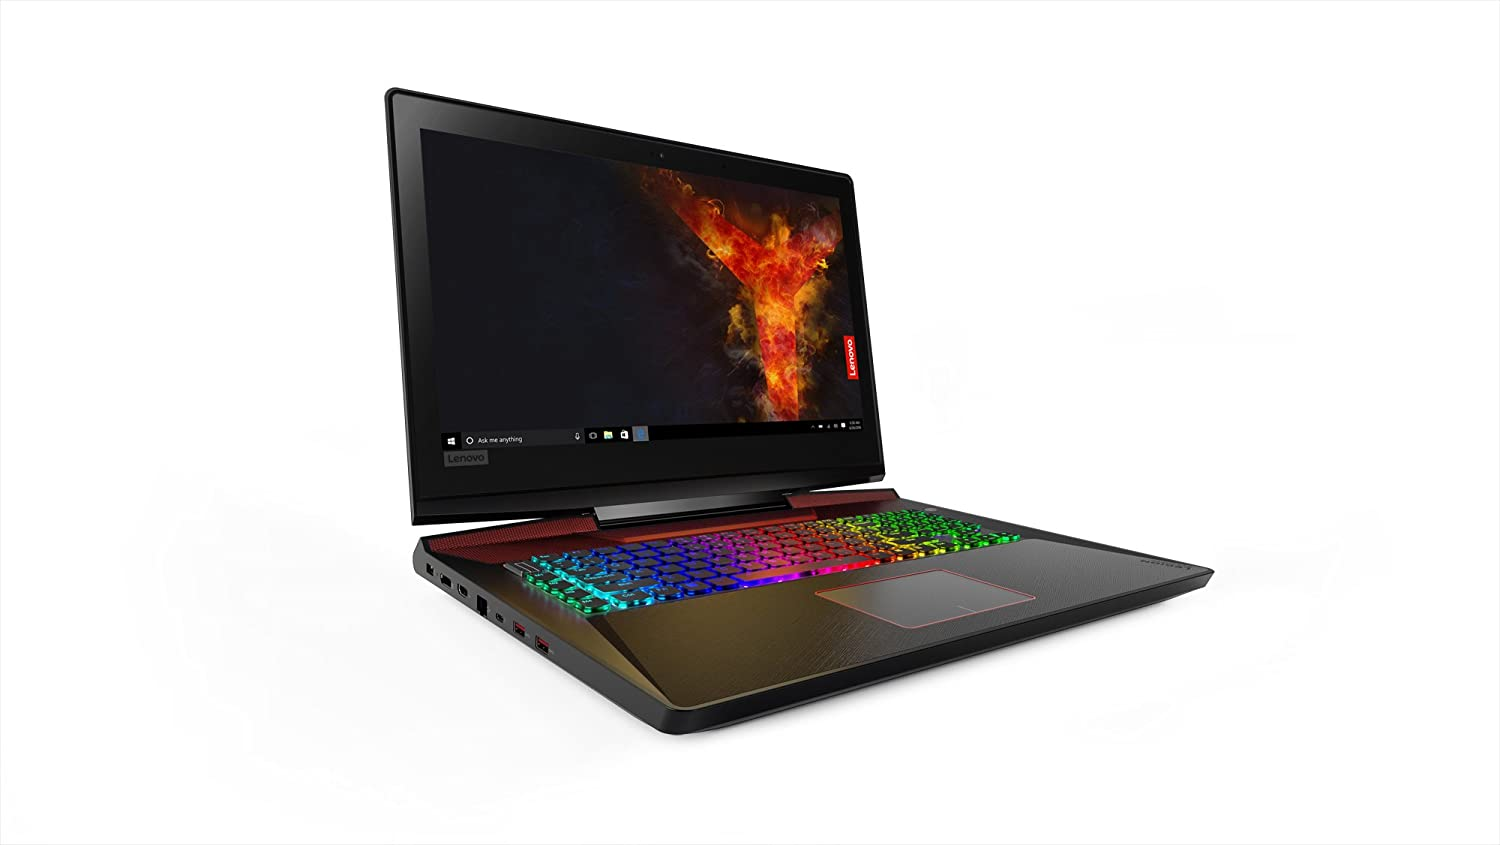 "Lenovo Legion Y920 17.3"" FHD Gaming Laptop (Intel Core i7-7820HK, 16 GB RAM, 512GB PCIe SSD + 1TB HDD, NVIDIA Geforce GTX 1070 w/8GB VRAM, VR Ready), 80YW000EUS"